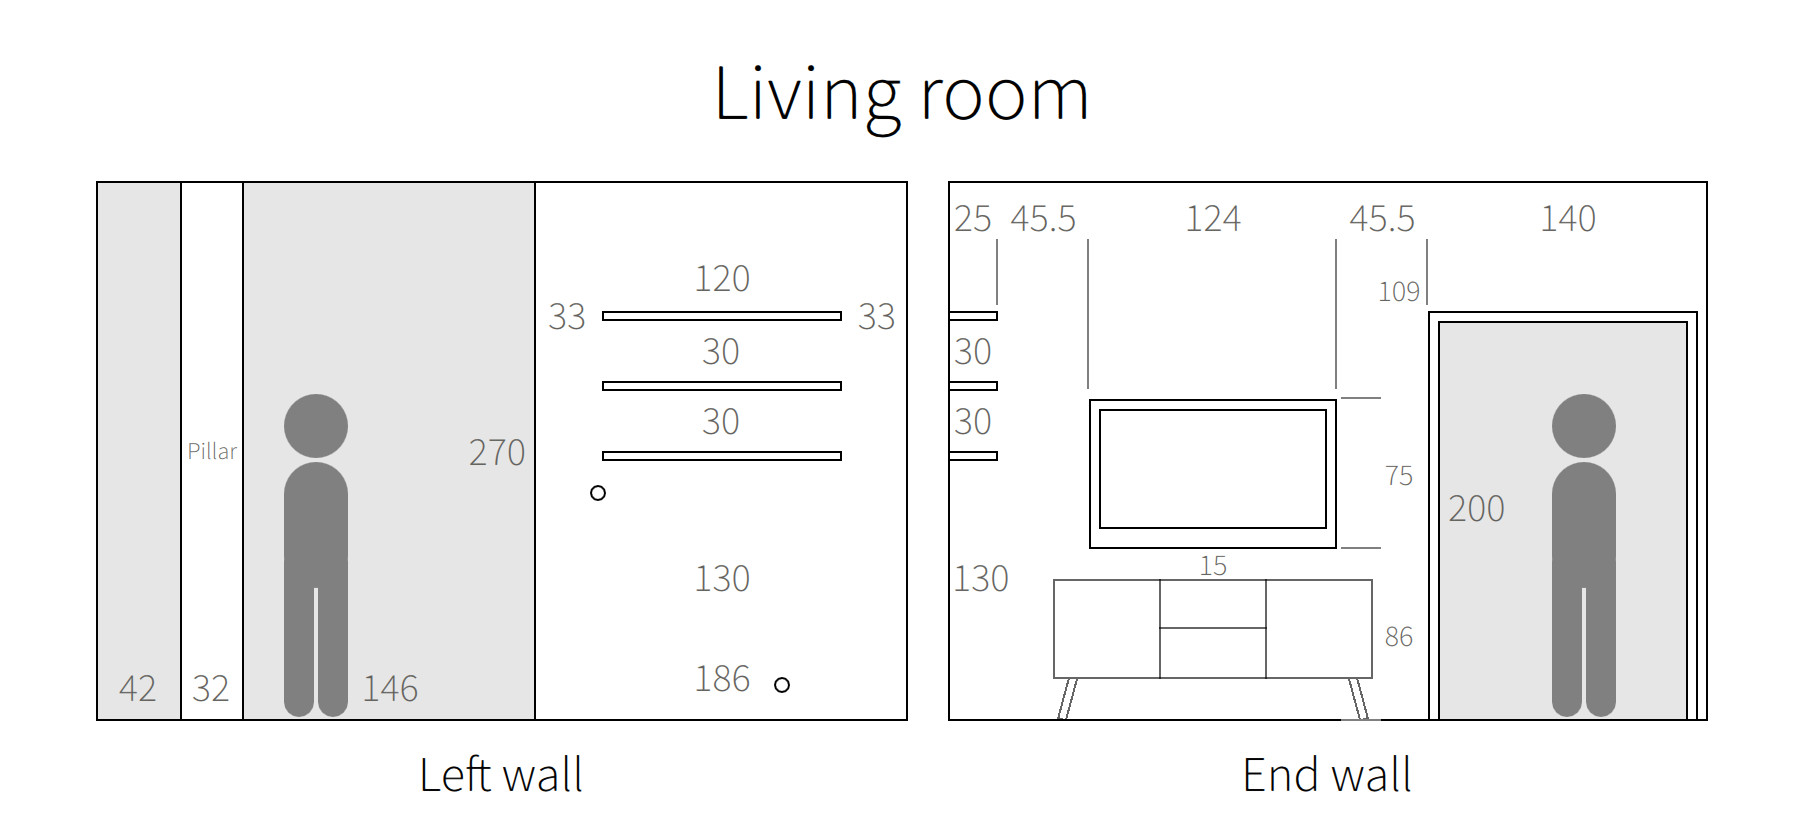 Renovation planning with qt quick living room blueprint left right malvernweather Choice Image